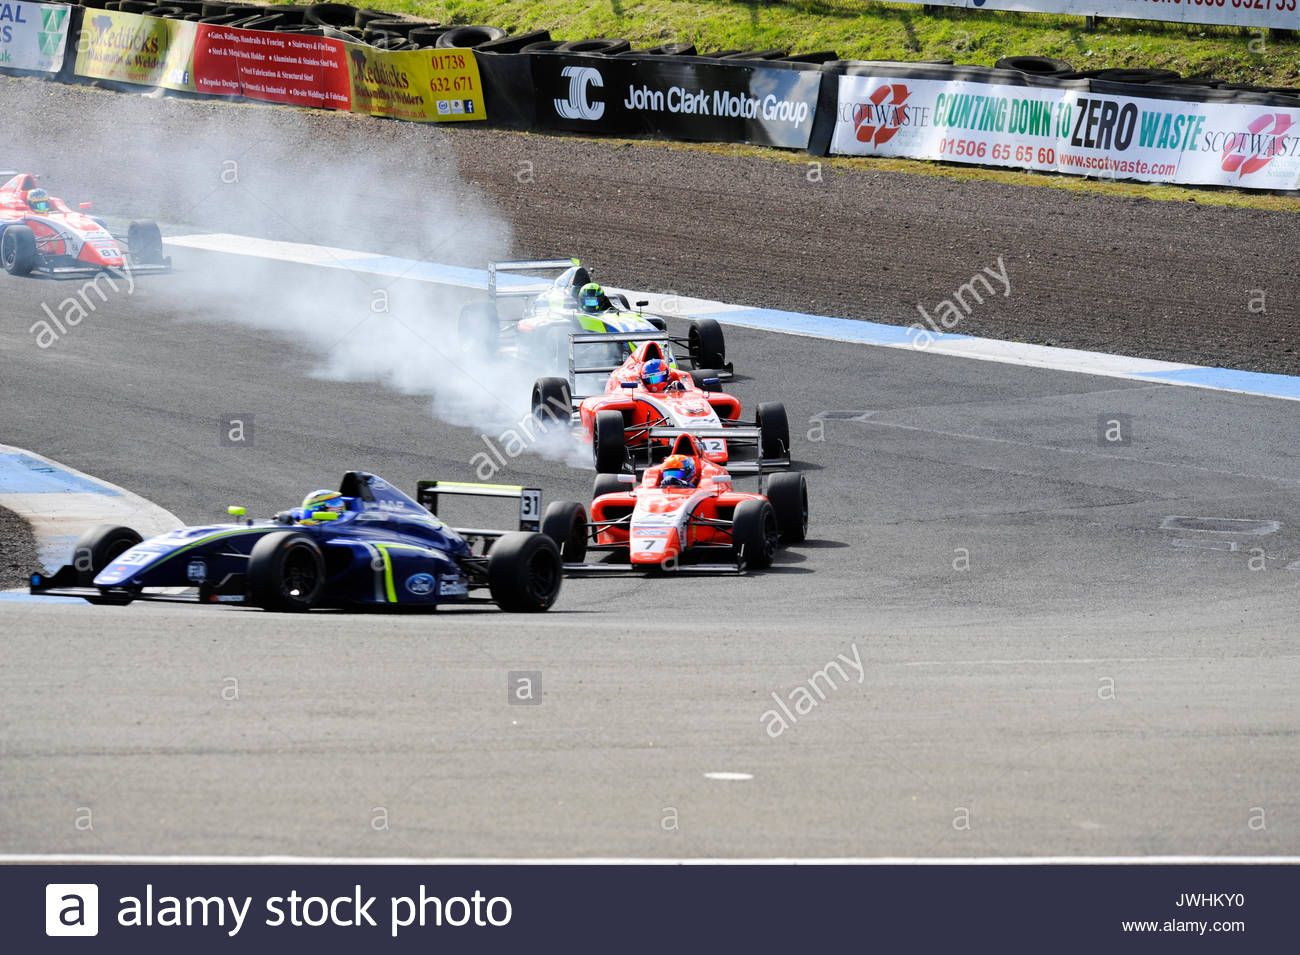 Dunfermline, UK. 13th Aug, 2017. Locking up into the Hairpin in a Formula 4 British Championship race during the Dunlop MSA British Touring Car Championship seventh round at Knockhill Race Circuit. Credit: Roger Gaisford/Alamy Live News - Stock Image